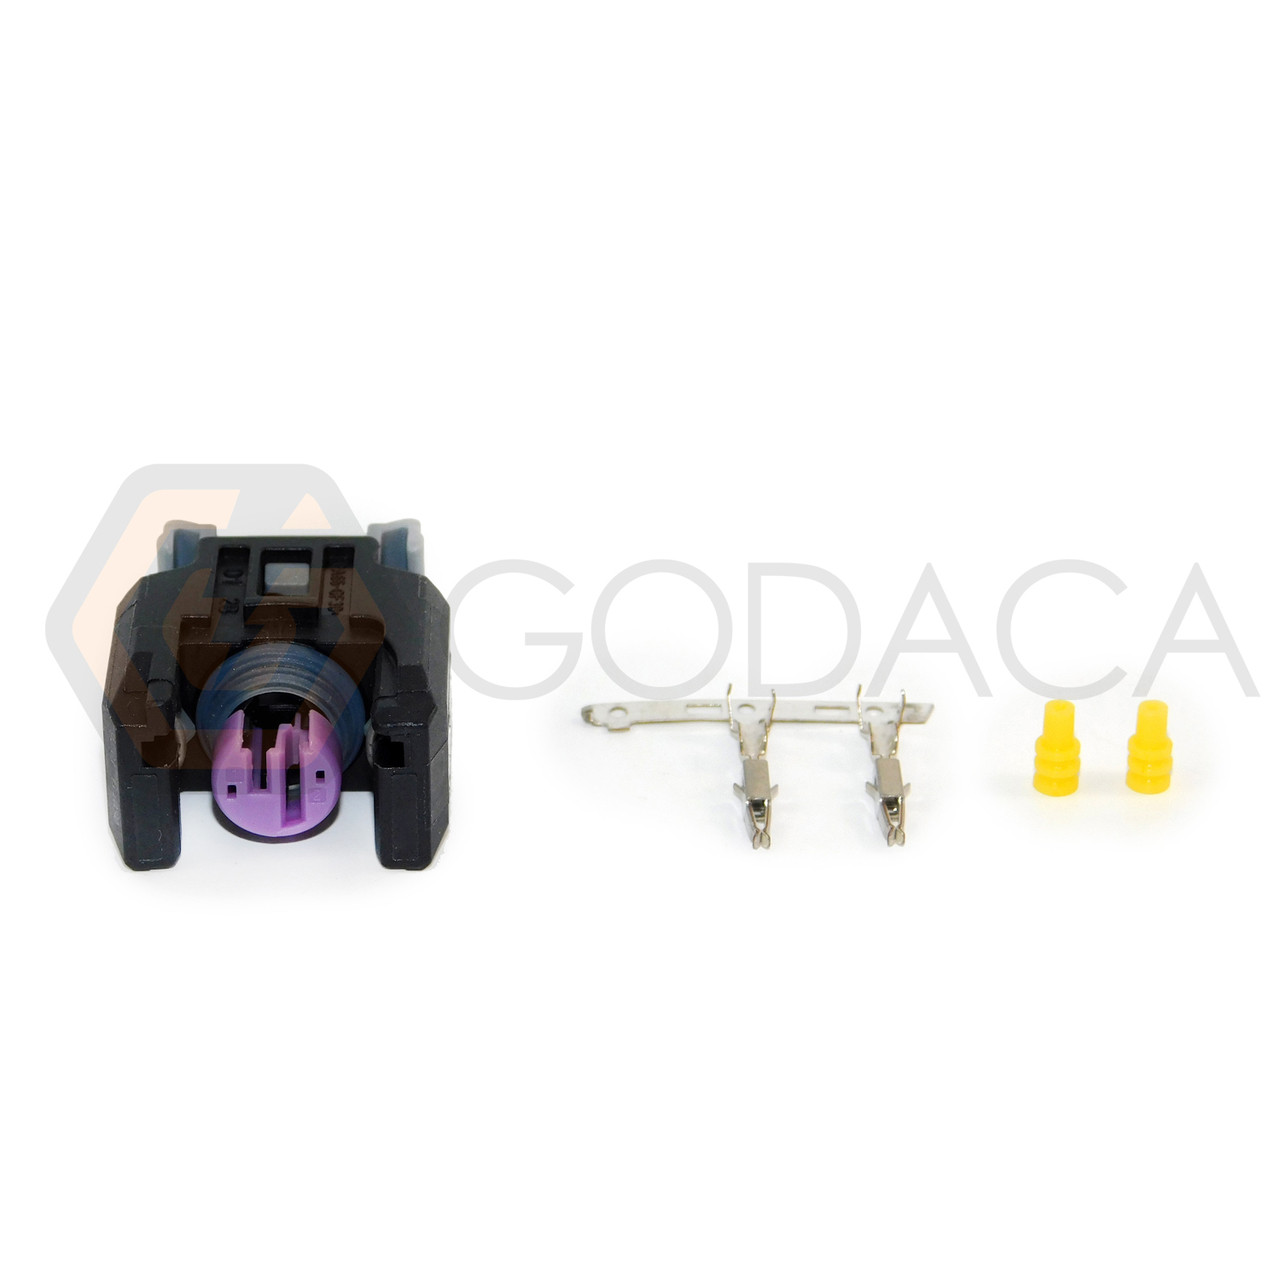 1x connector 2 way 2 pin for fuel injector 13816706 delphi w out wire godaca llc  [ 1280 x 1280 Pixel ]